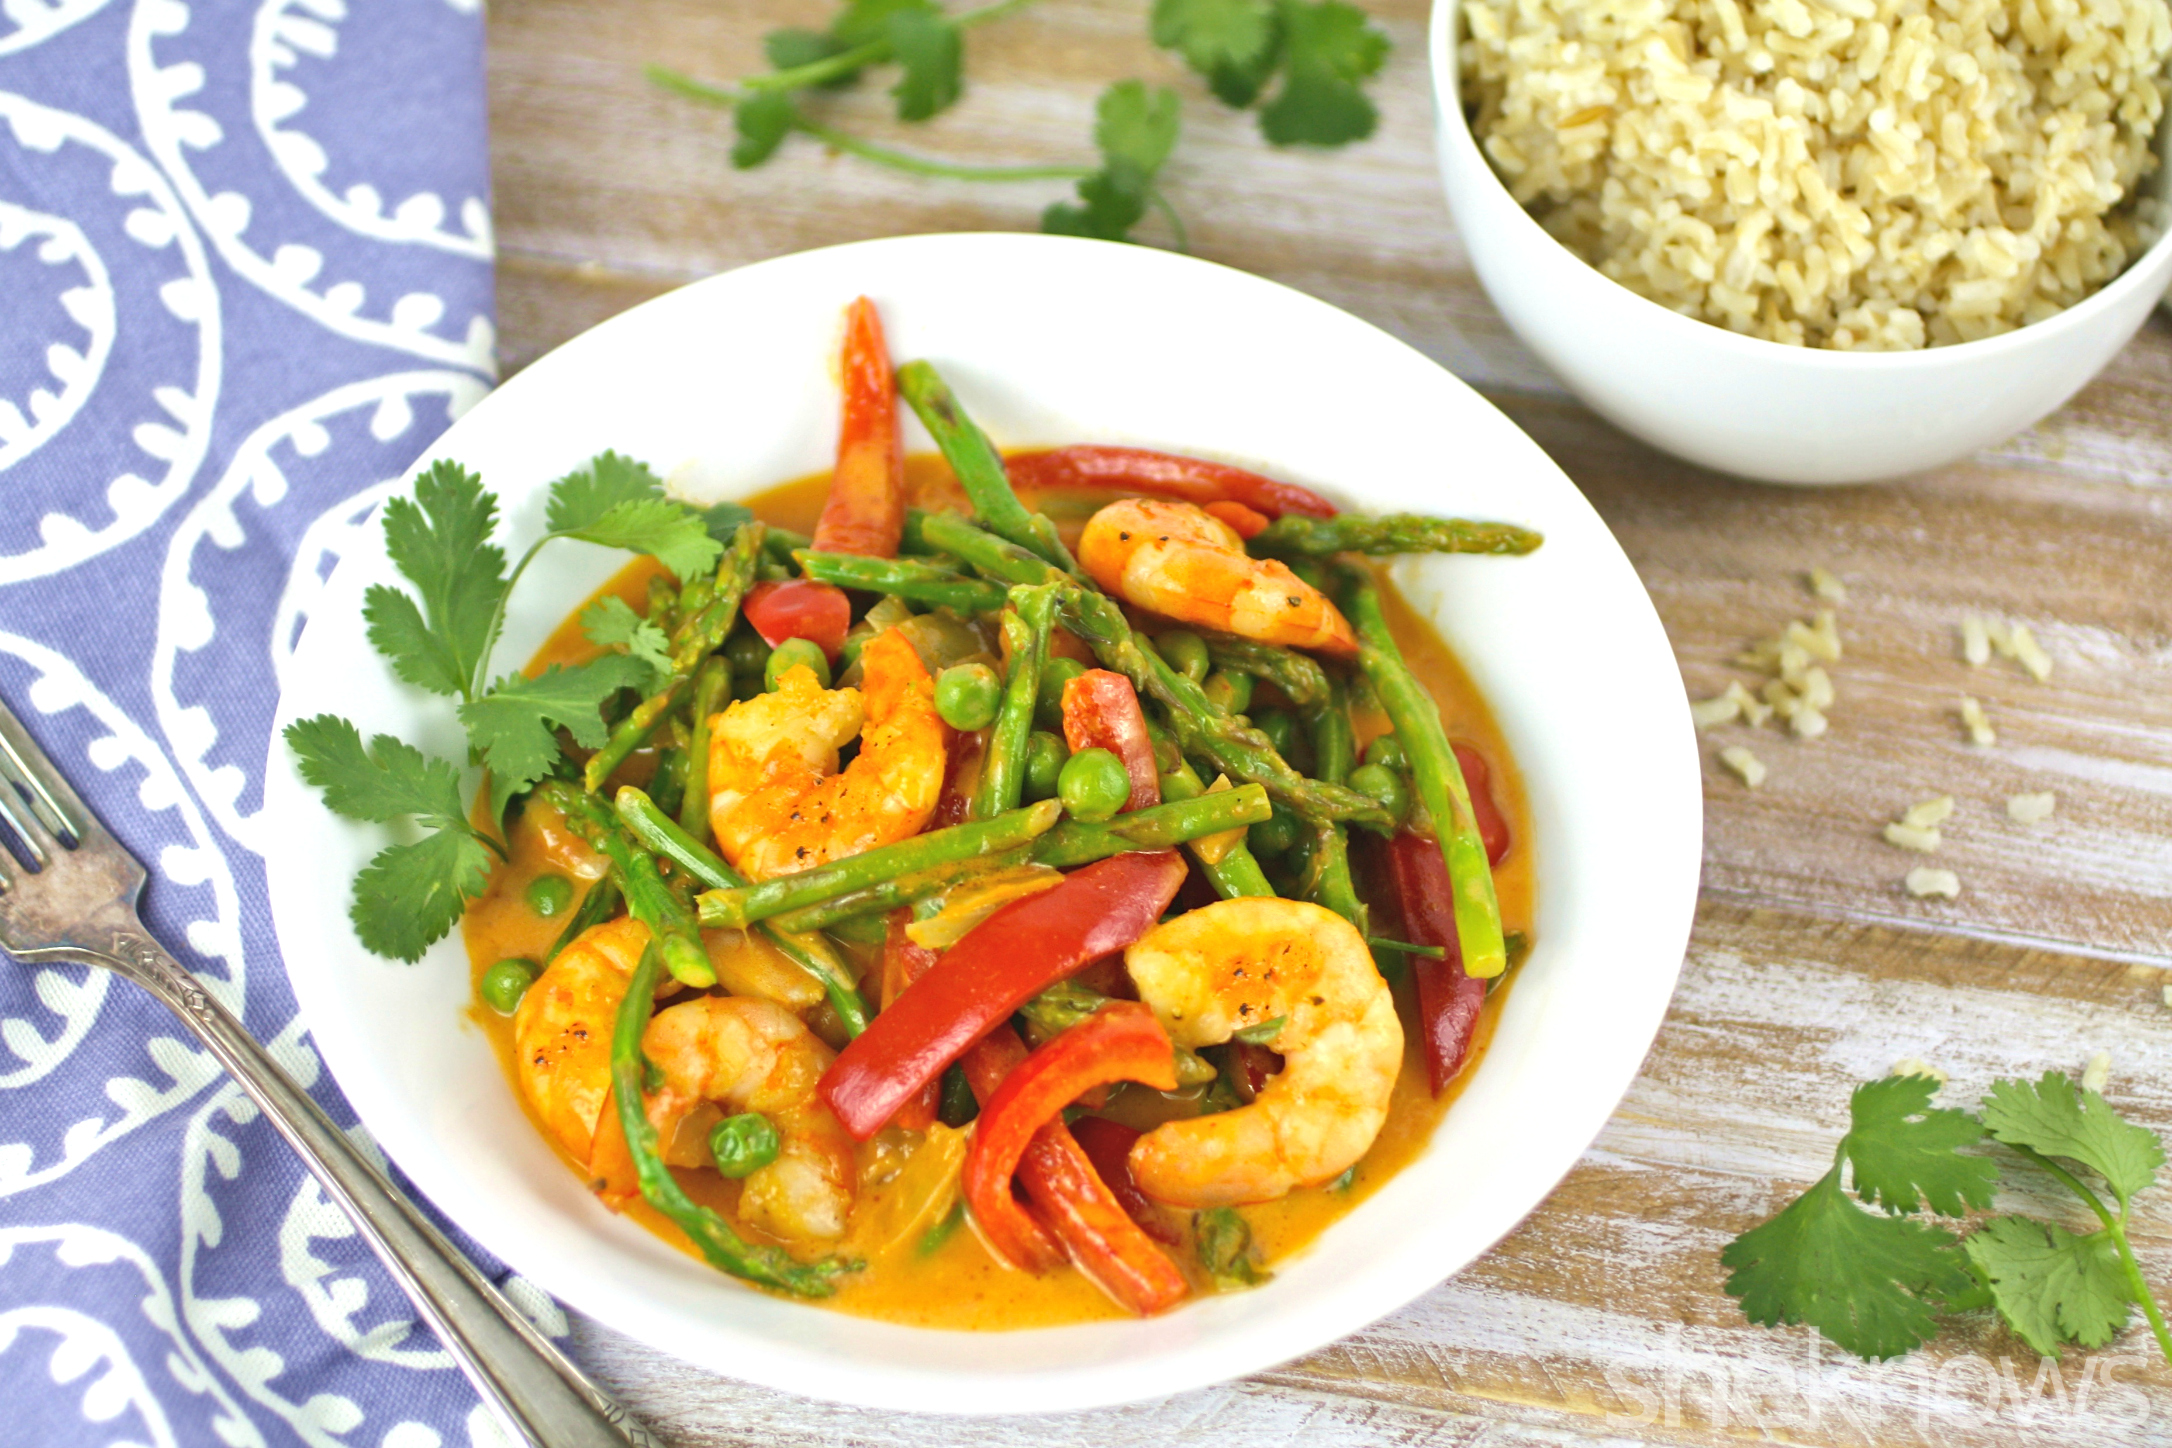 We love tasty, one-dish wonder dinners like curried shrimp with spring vegetables